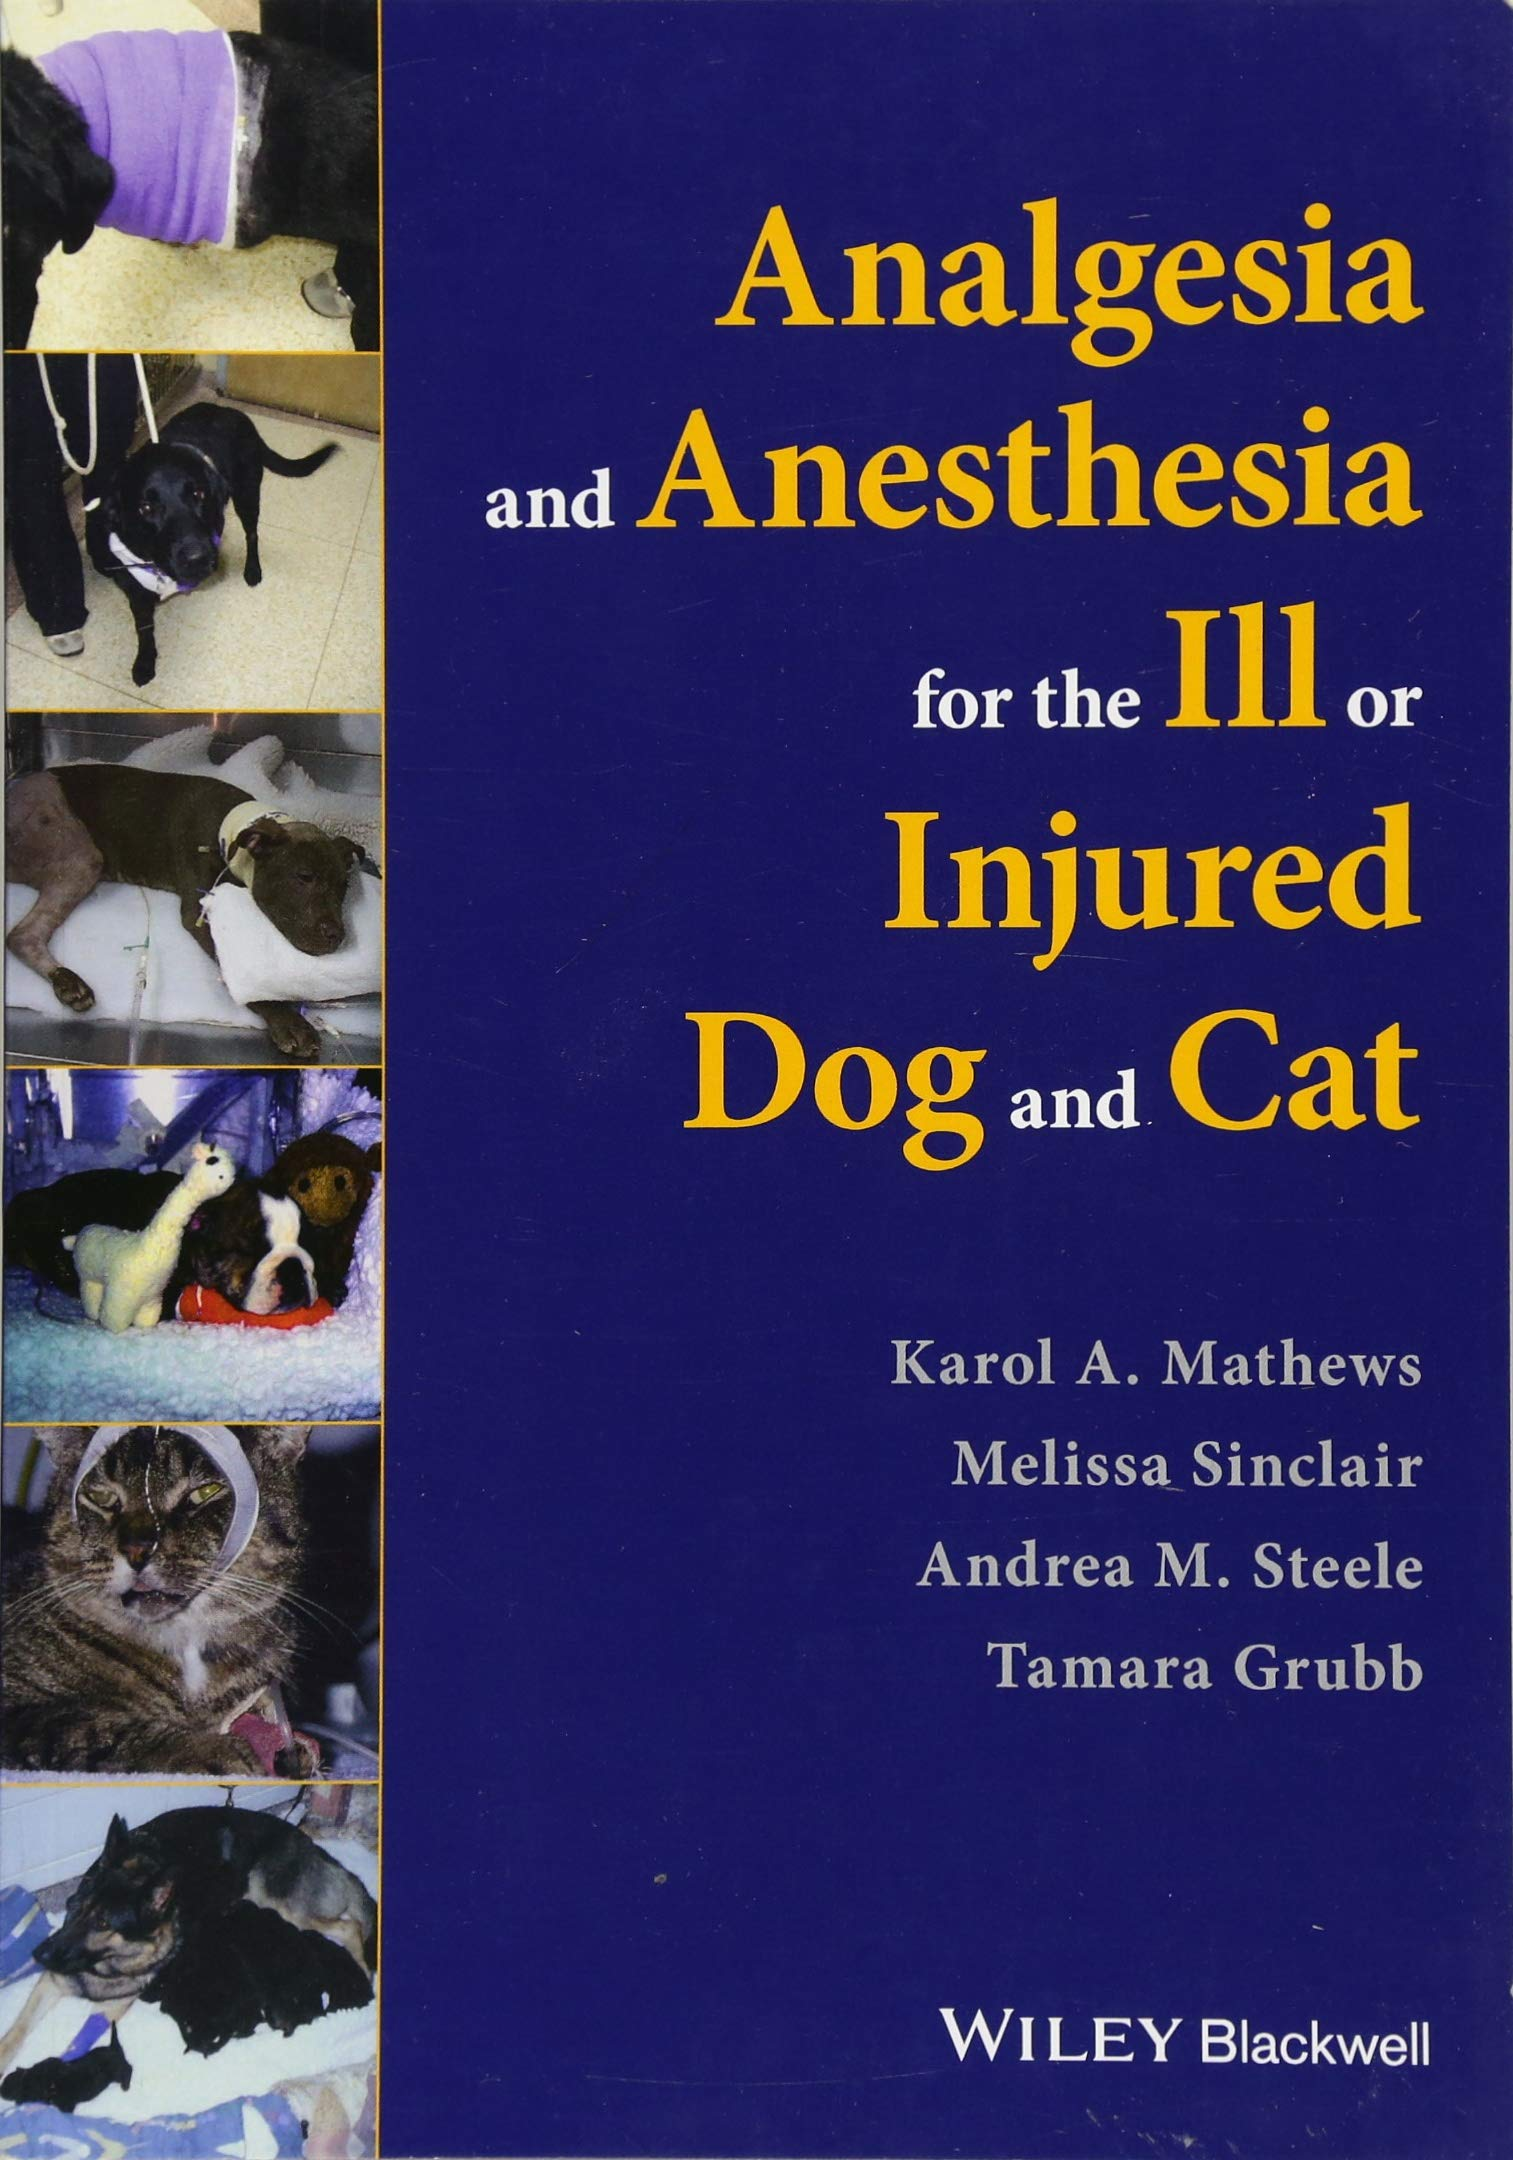 Image OfAnalgesia And Anesthesia For The Ill Or Injured Dog And Cat